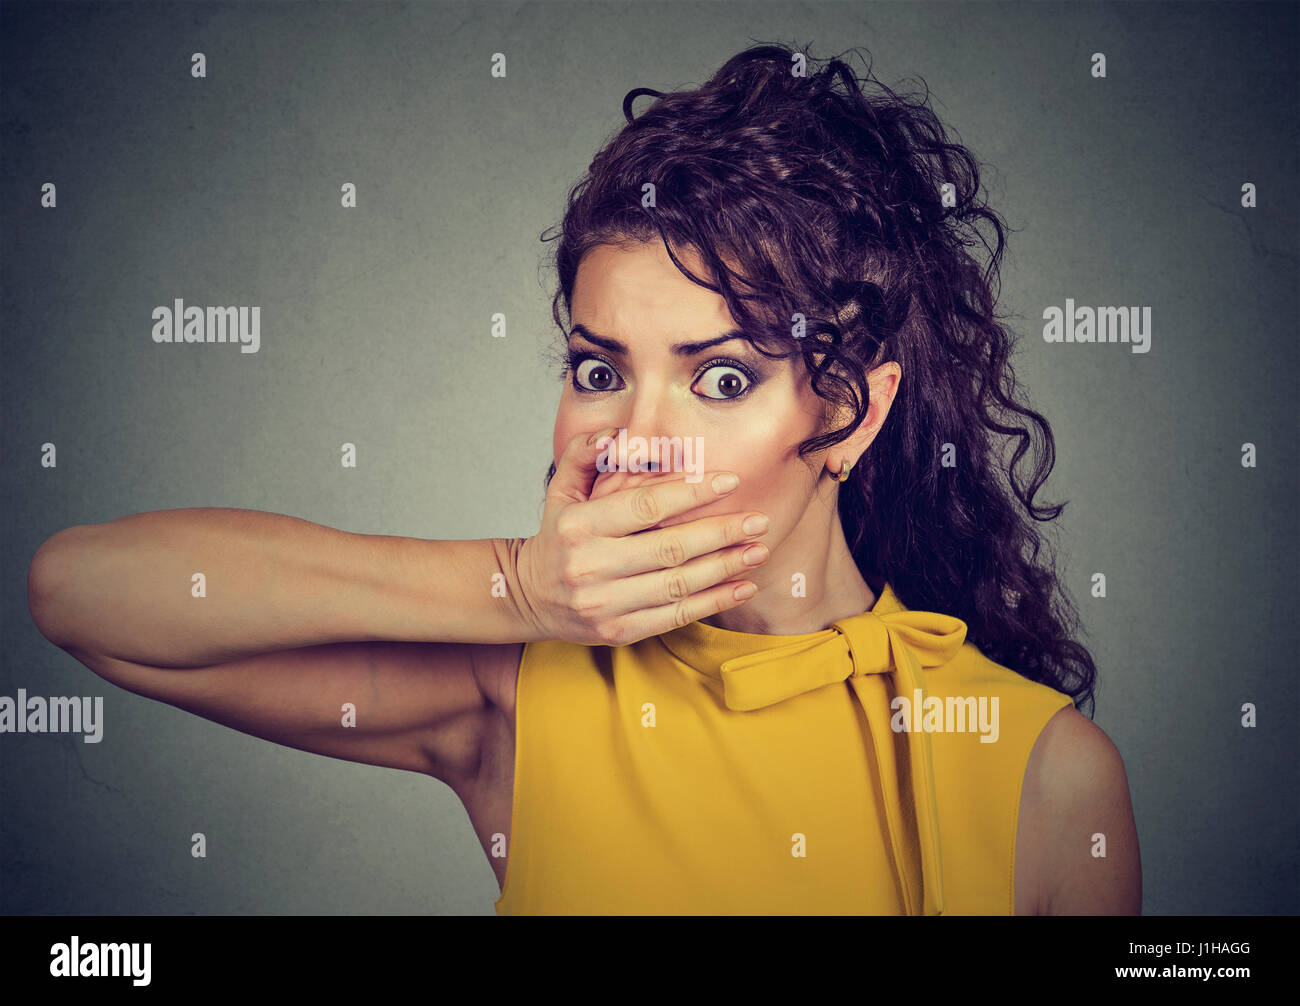 Closeup portrait of scared young woman covering with hand her mouth isolated on gray wall background - Stock Image